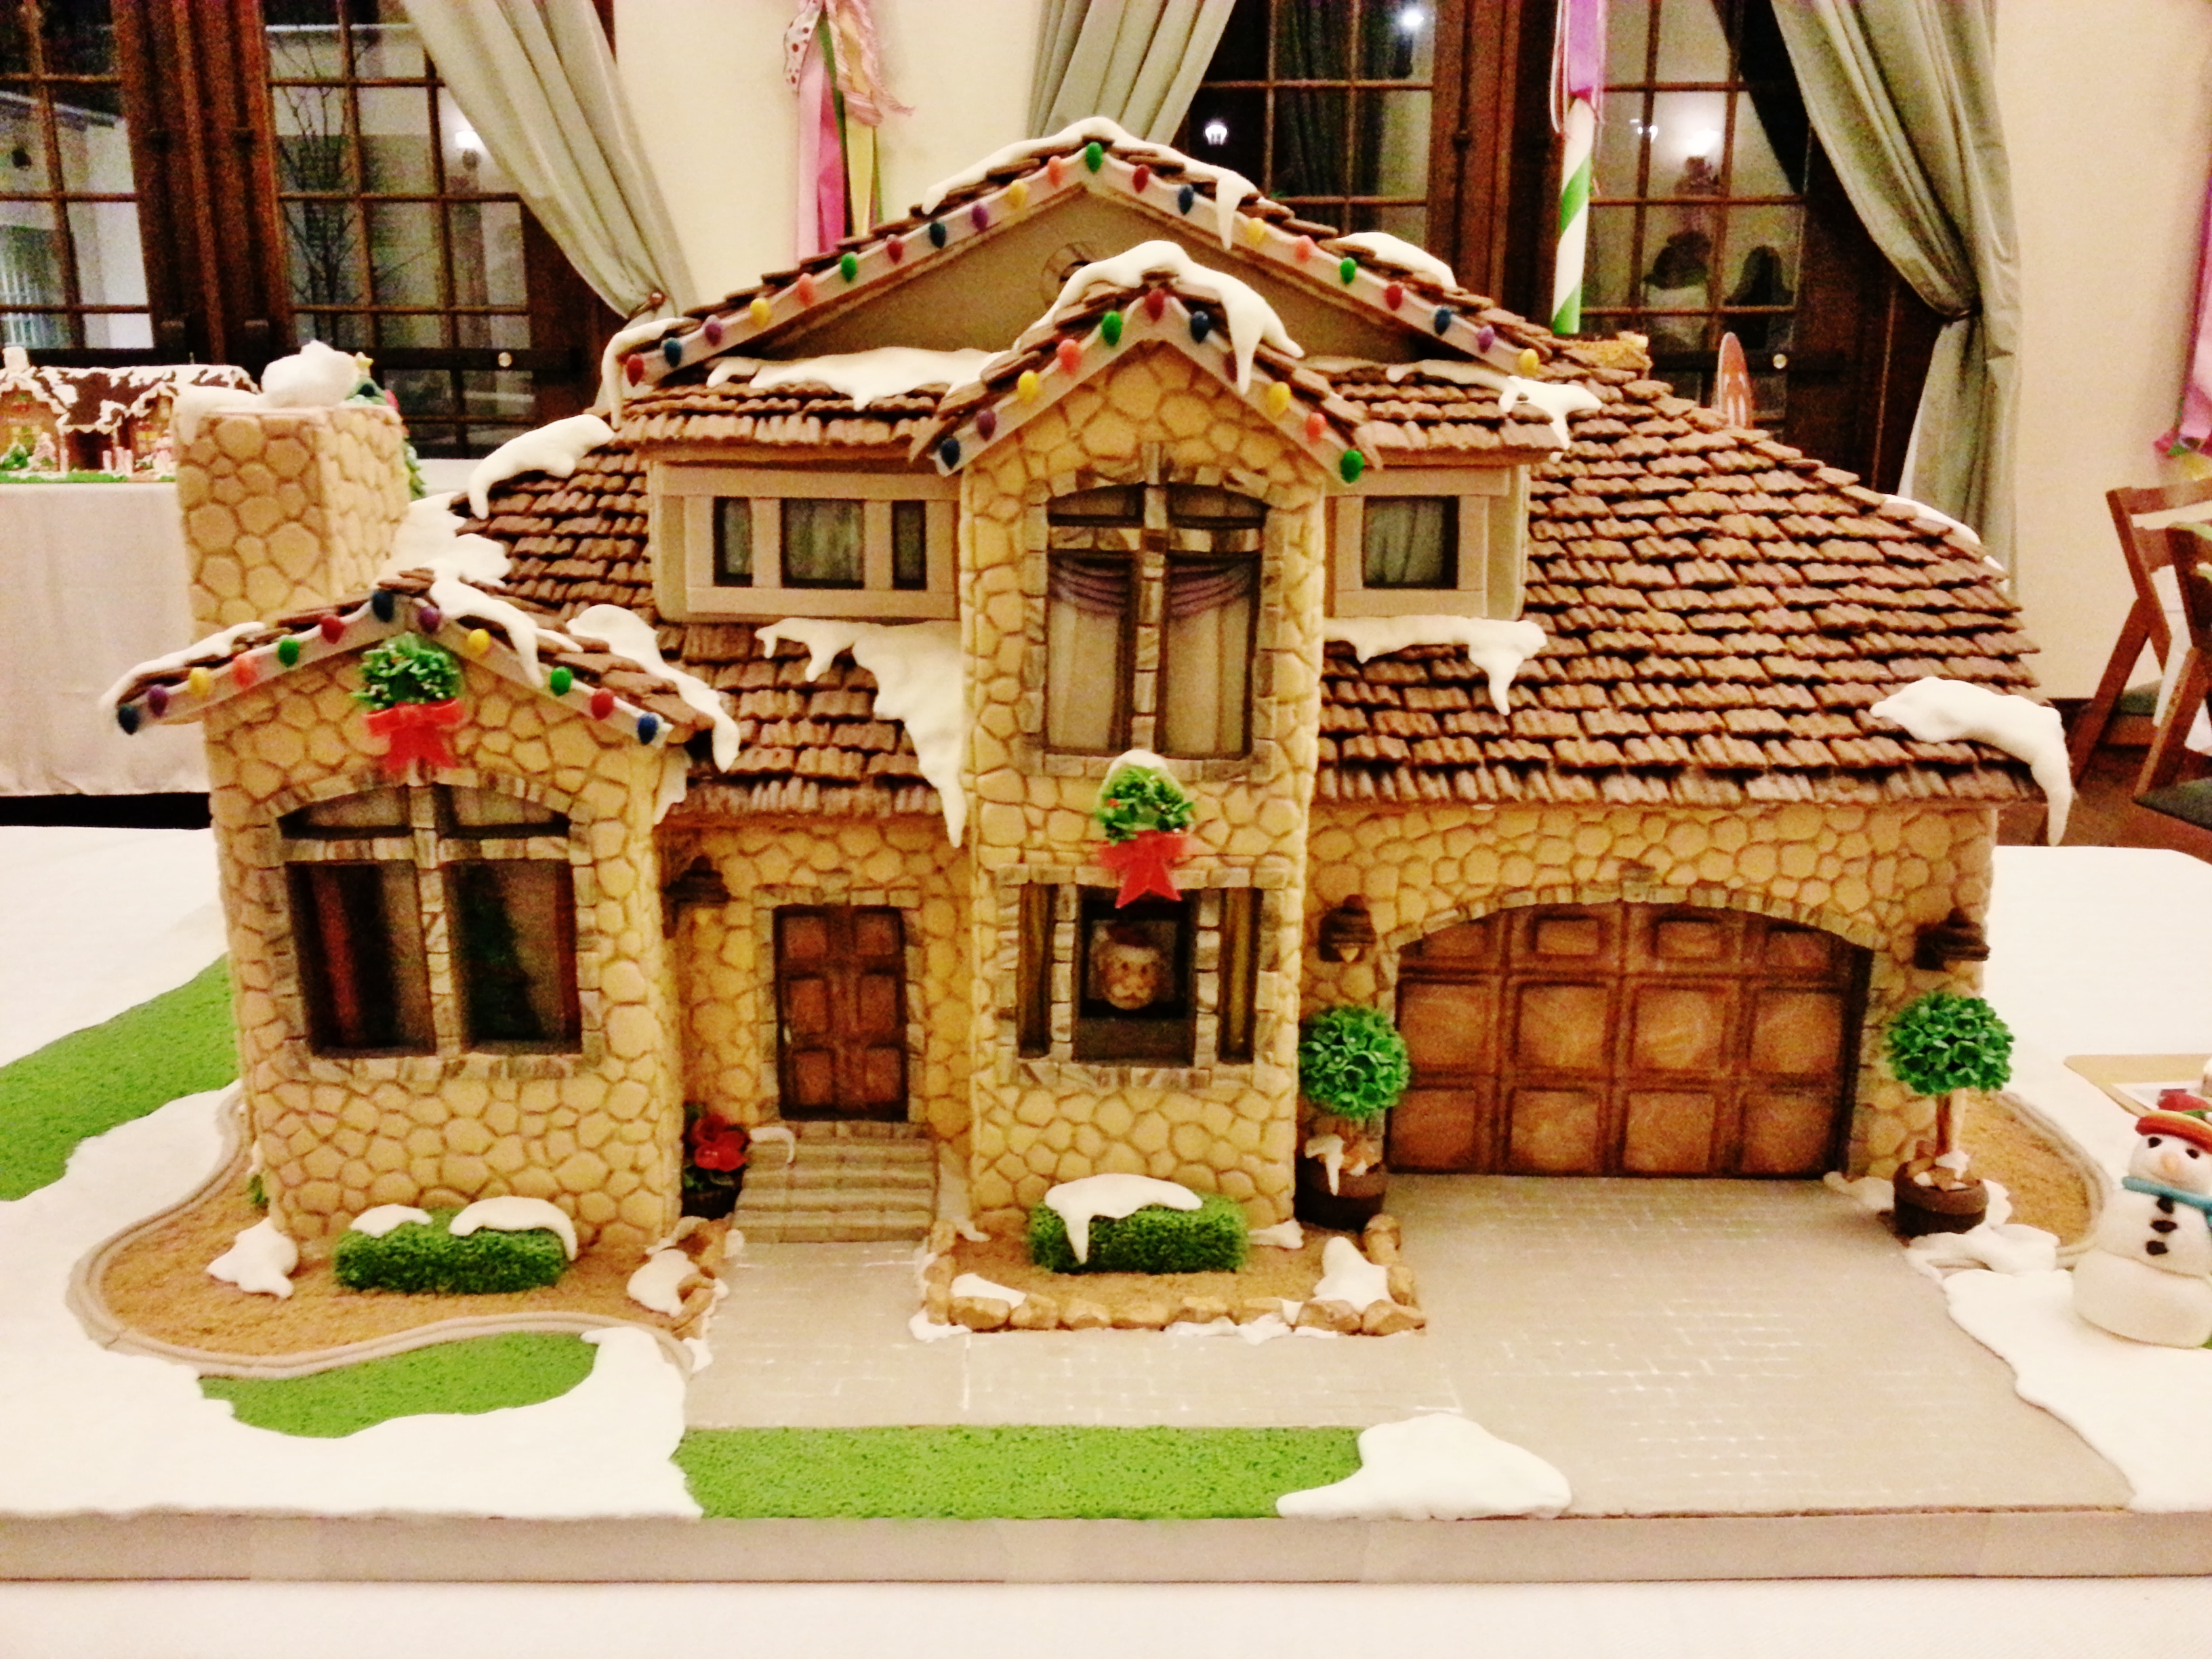 12 Best Gingerbread Houses & Castles For The Holidays CandyStore Com